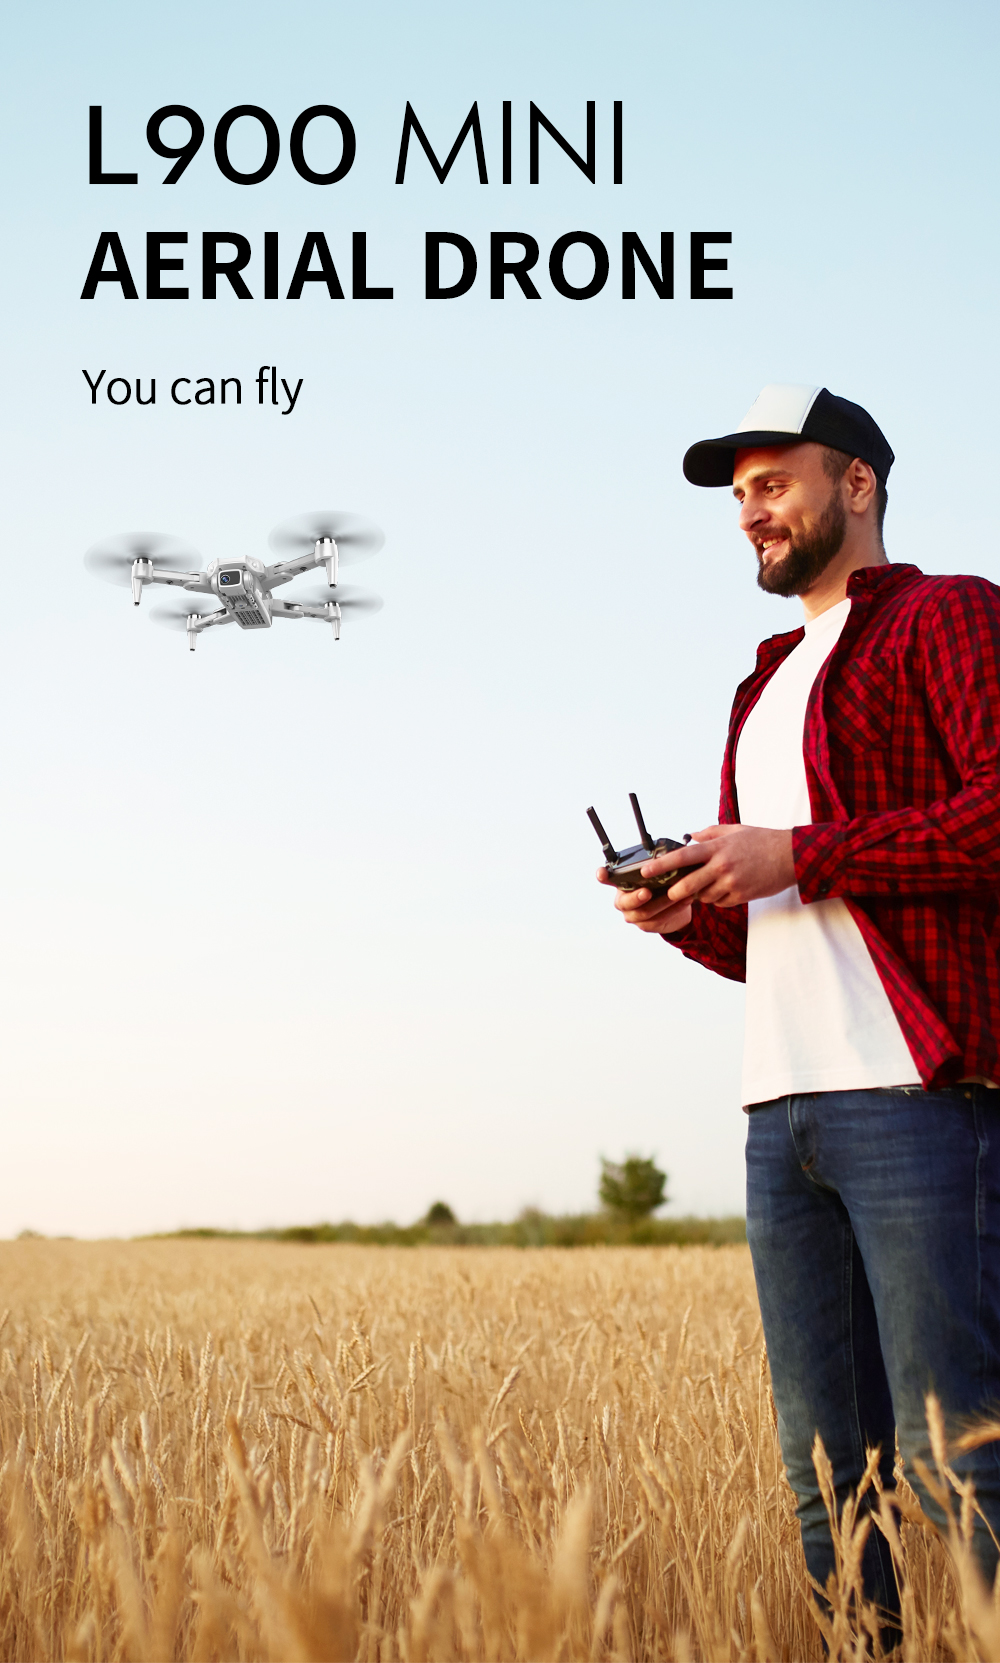 Hc130d64857fe4eac87b550e443b40a04k - L900 Pro Drone 4K Professional 5G WIFI GPS Dron With HD Camera FPV 28min Flight Time Brushless Motor Quadcopter Distance 1.2km